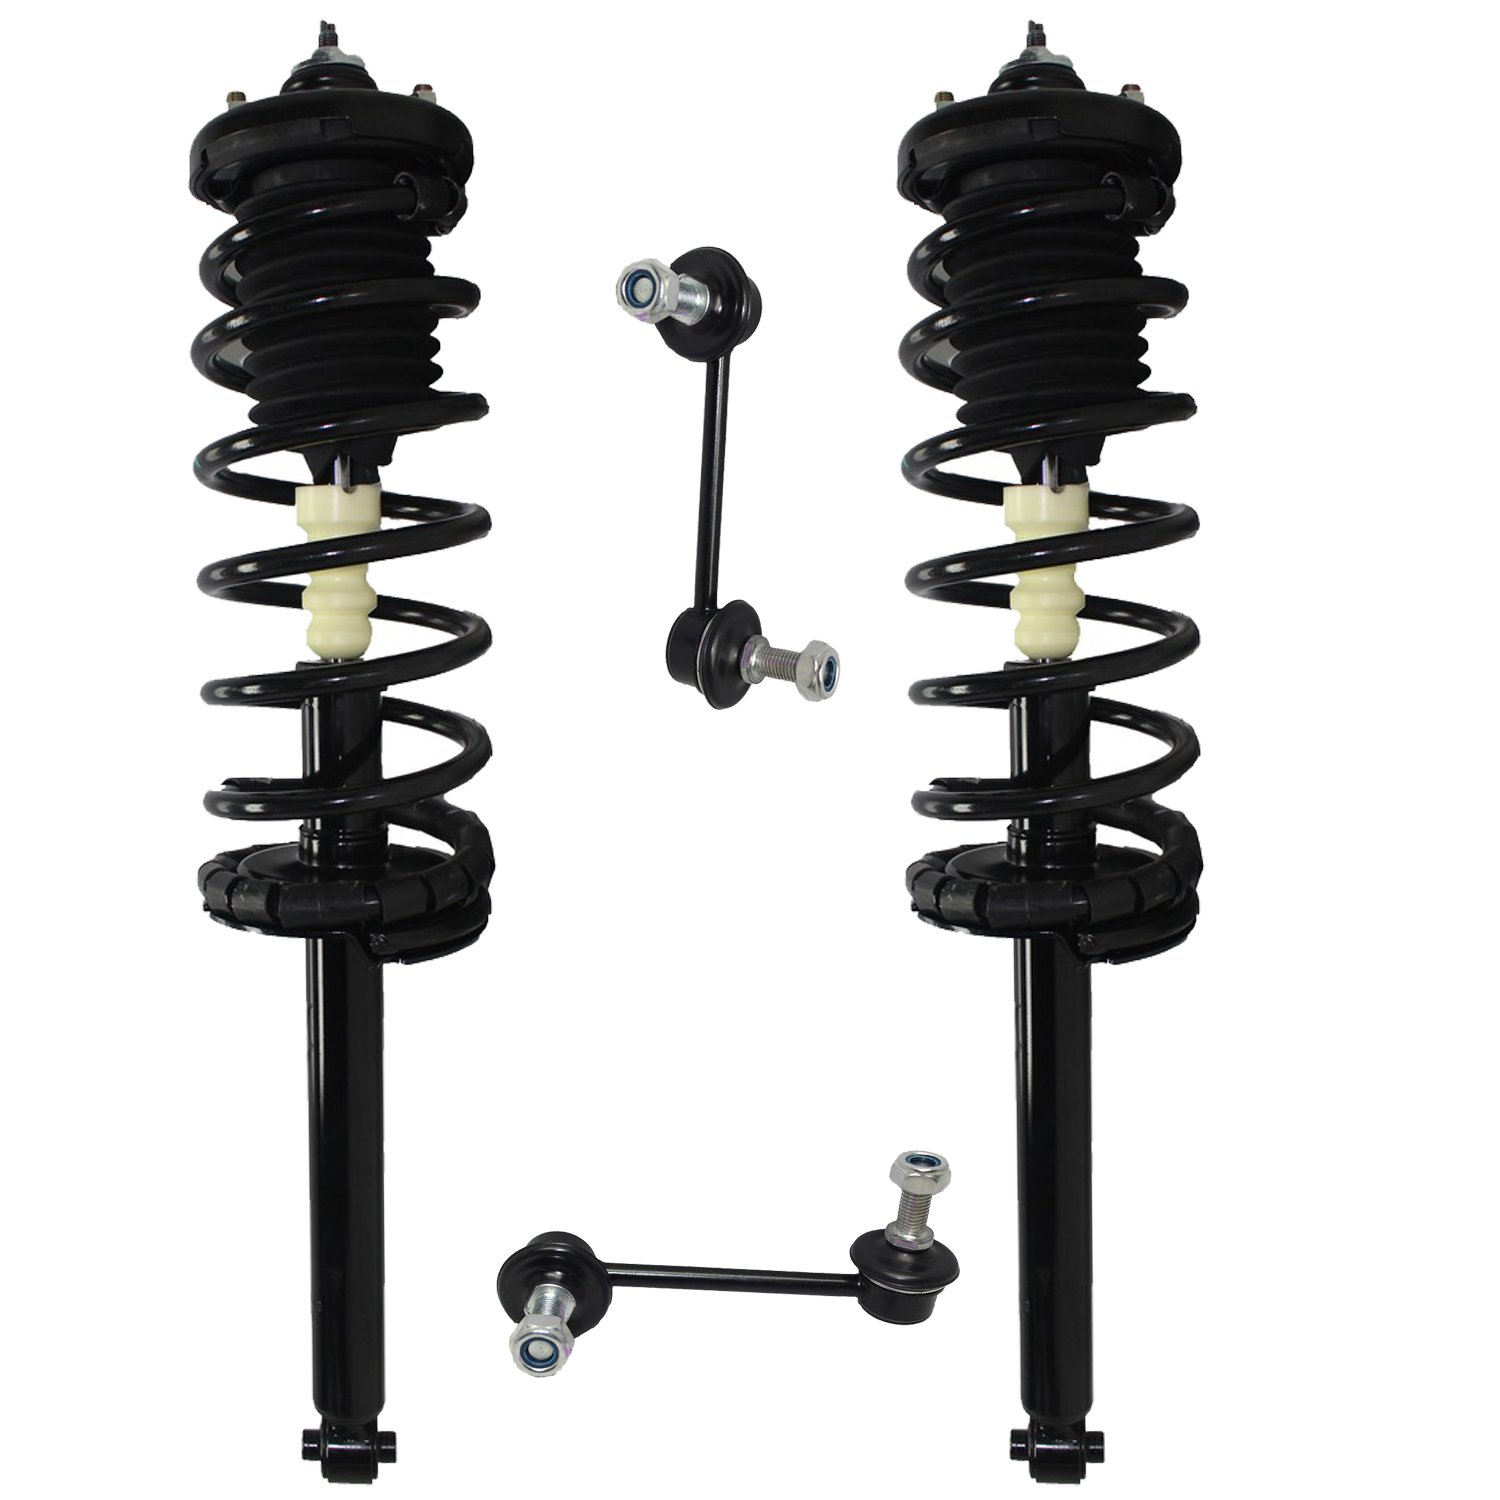 Brand New Front Driver and Passenger Side Complete Strut /& Spring Assembly for 1998-2002 Honda Accord 2 Both Front Front